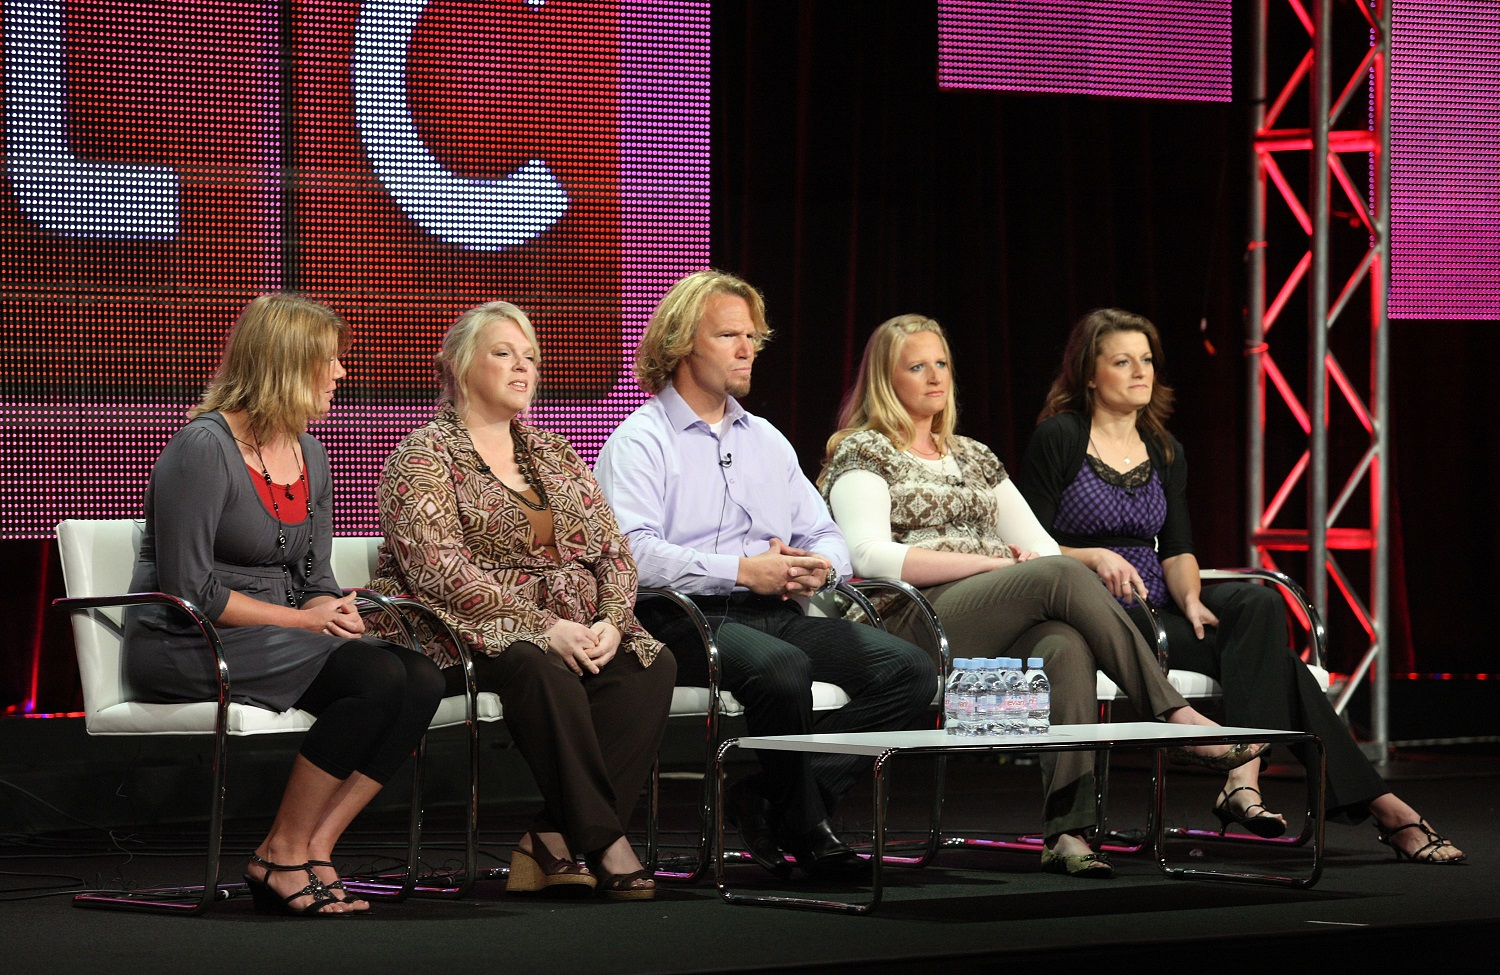 Meri Brwon, Janelle Brown, Kody Brown, Christine Brown and Robyn Brown from Sister Wives